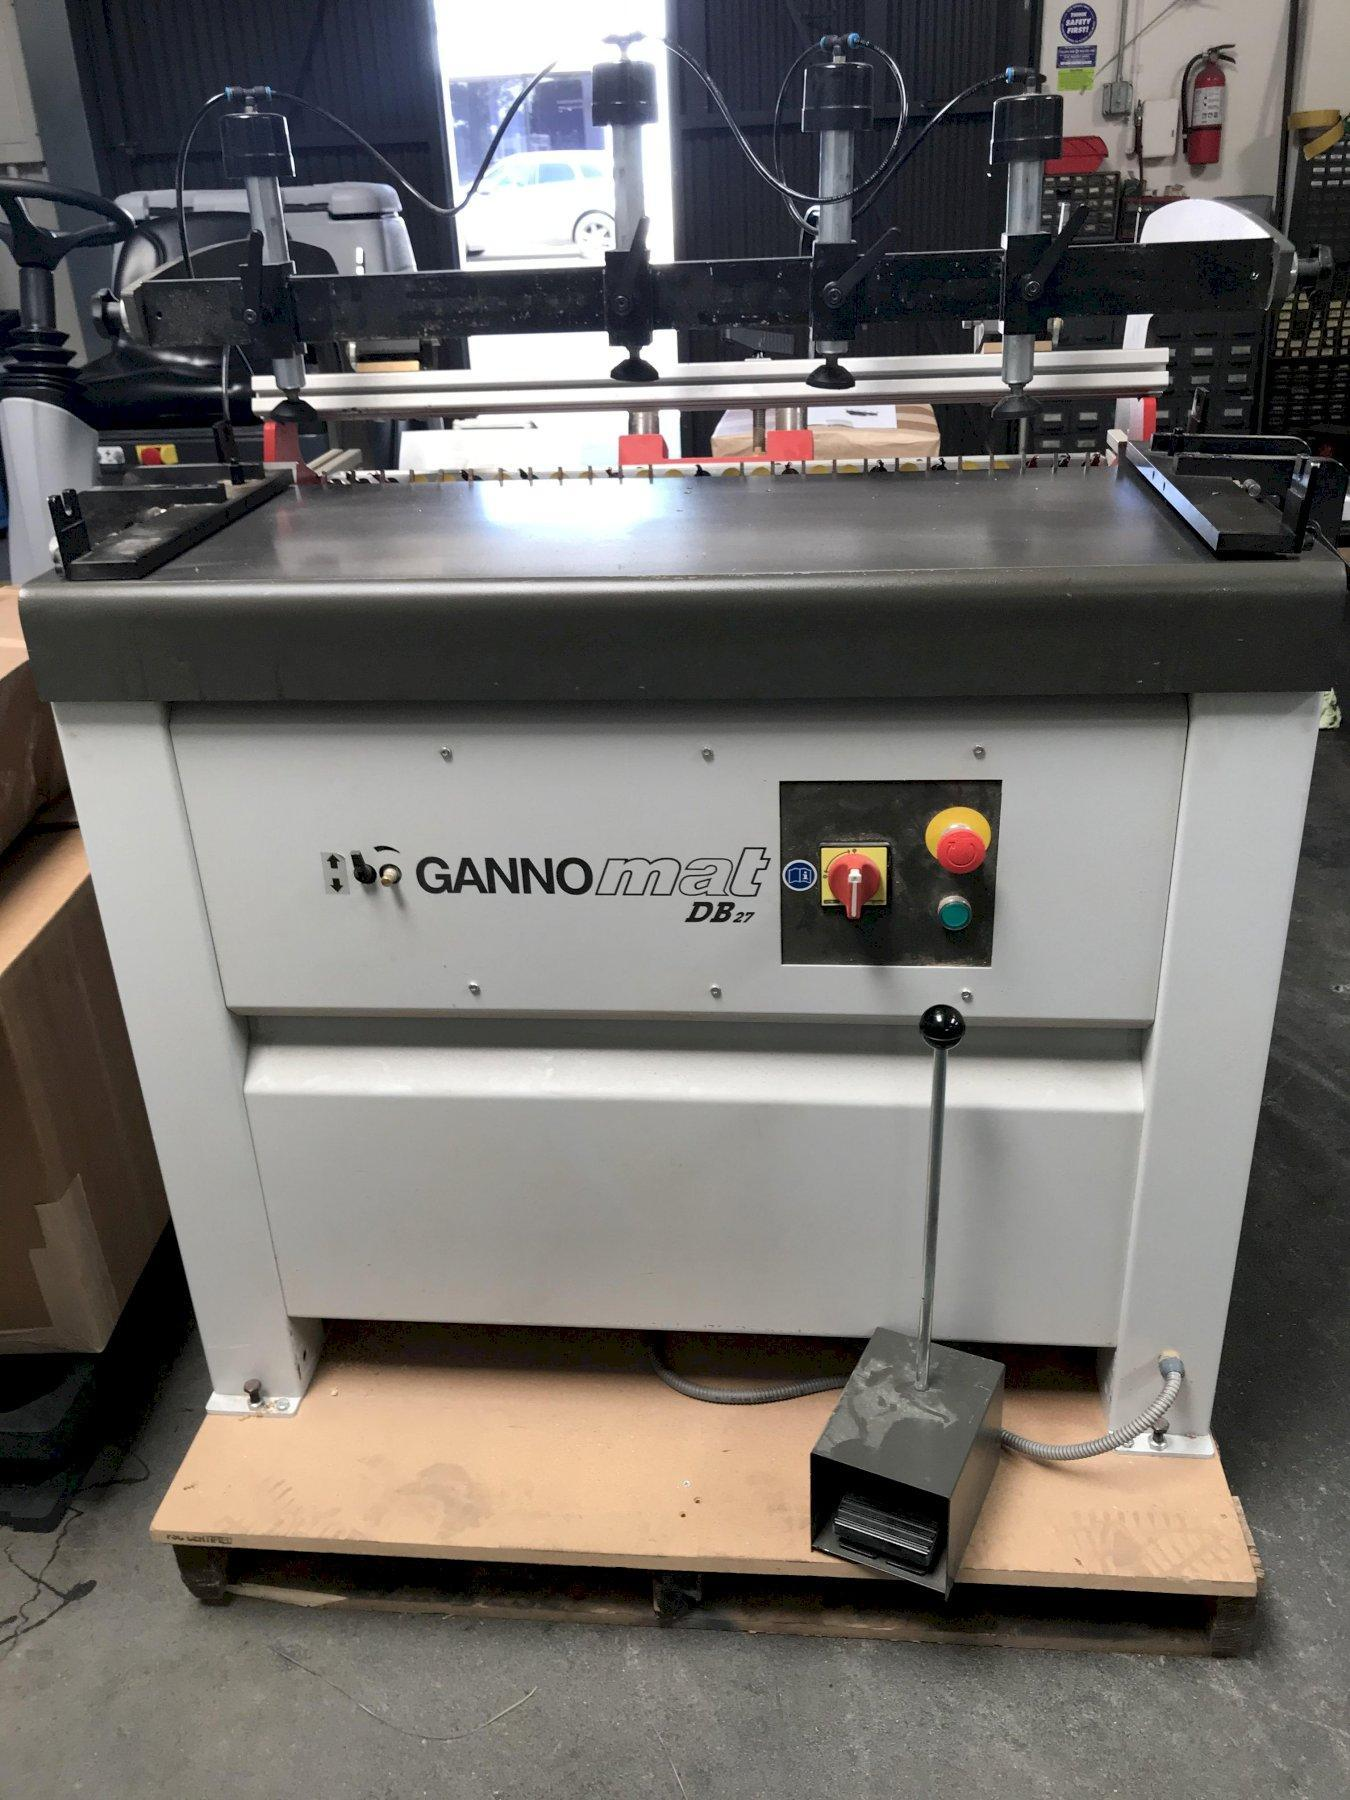 Gannomat DB27 Dowel Hole Boring Machine 2017